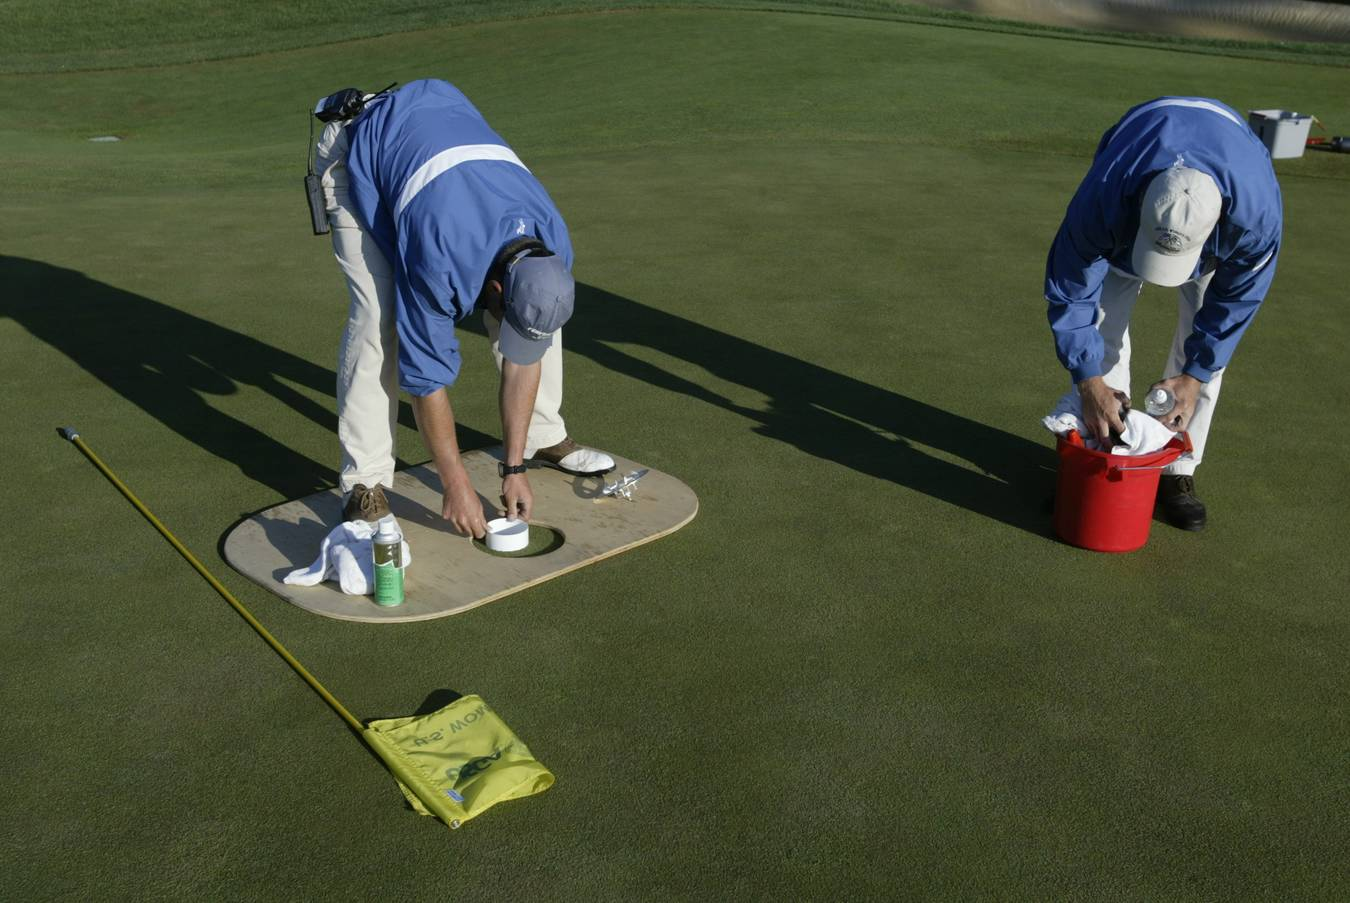 Enhanced Hole-Location Sheets Take Guesswork Out of